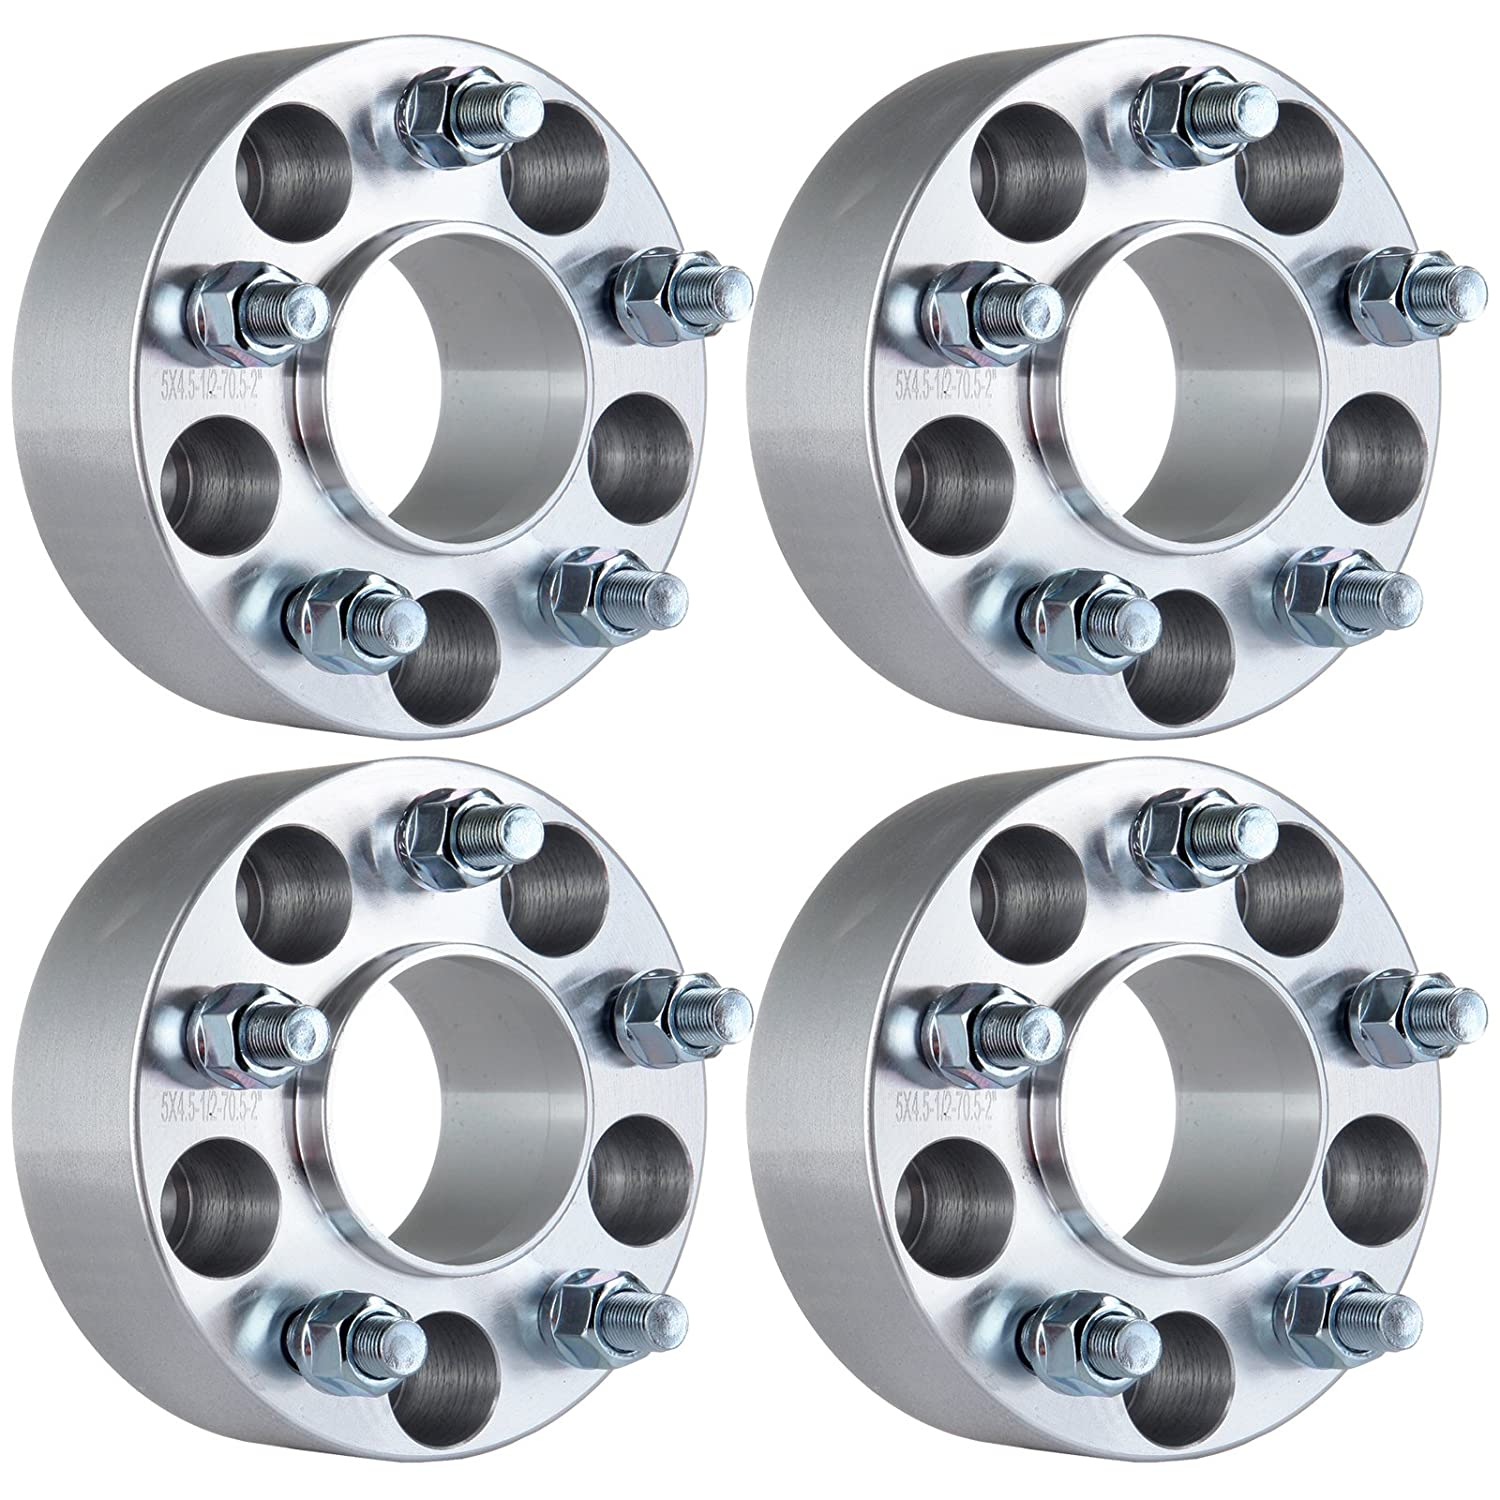 ECCPP 5 lug Hubcentric Wheel Spacers Adapters 2' 5x4.5 to 5x4.5 |5x114.3mm to 5x114.3mm 70.5mm 1/2'x20 4X for Ford Mustang Mach 1 Crown Victoria Edge Ranger Explorer Lincoln Town Car Mercury